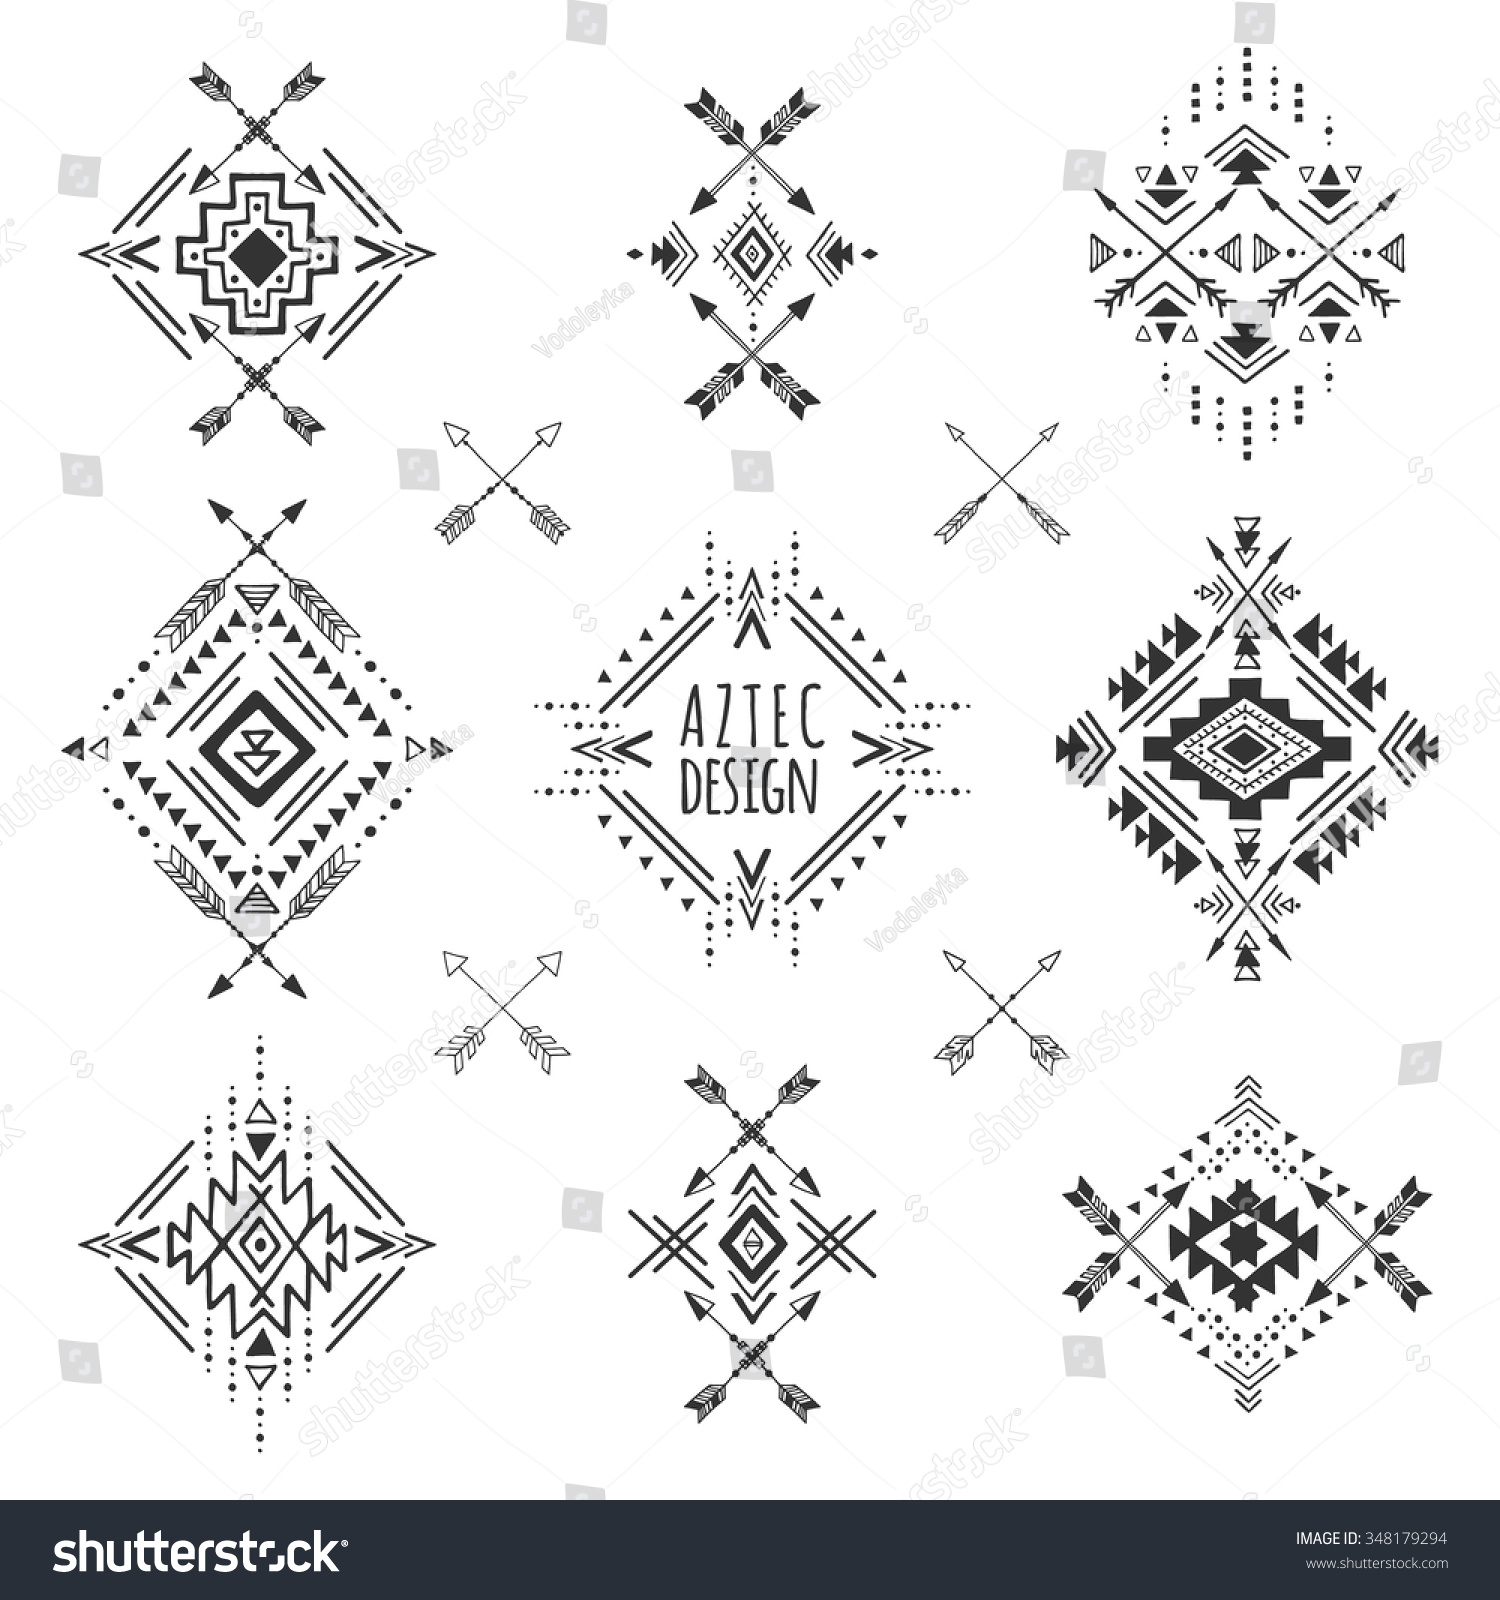 aztec elements tribal geometric symbols tattoos stock vector 348179294 shutterstock. Black Bedroom Furniture Sets. Home Design Ideas